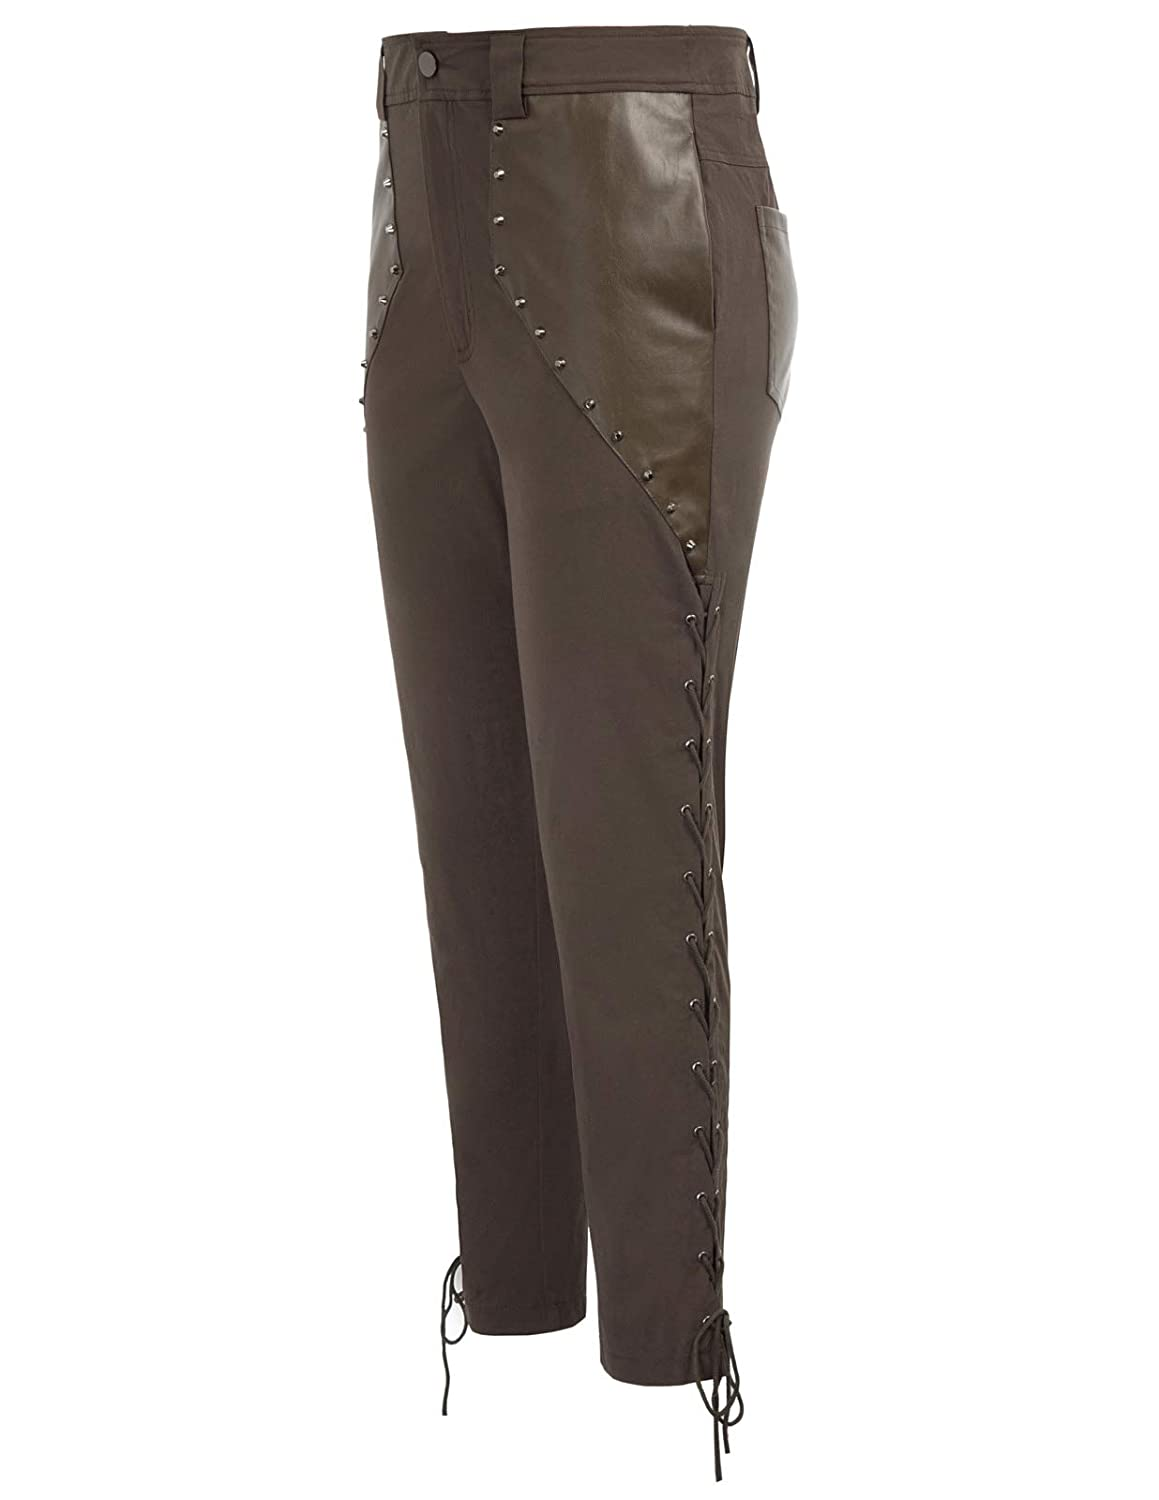 68b70a1040 SCARLET DARKNESS Men's Pirate Renaissance Trousers Steampunk Costume Pants